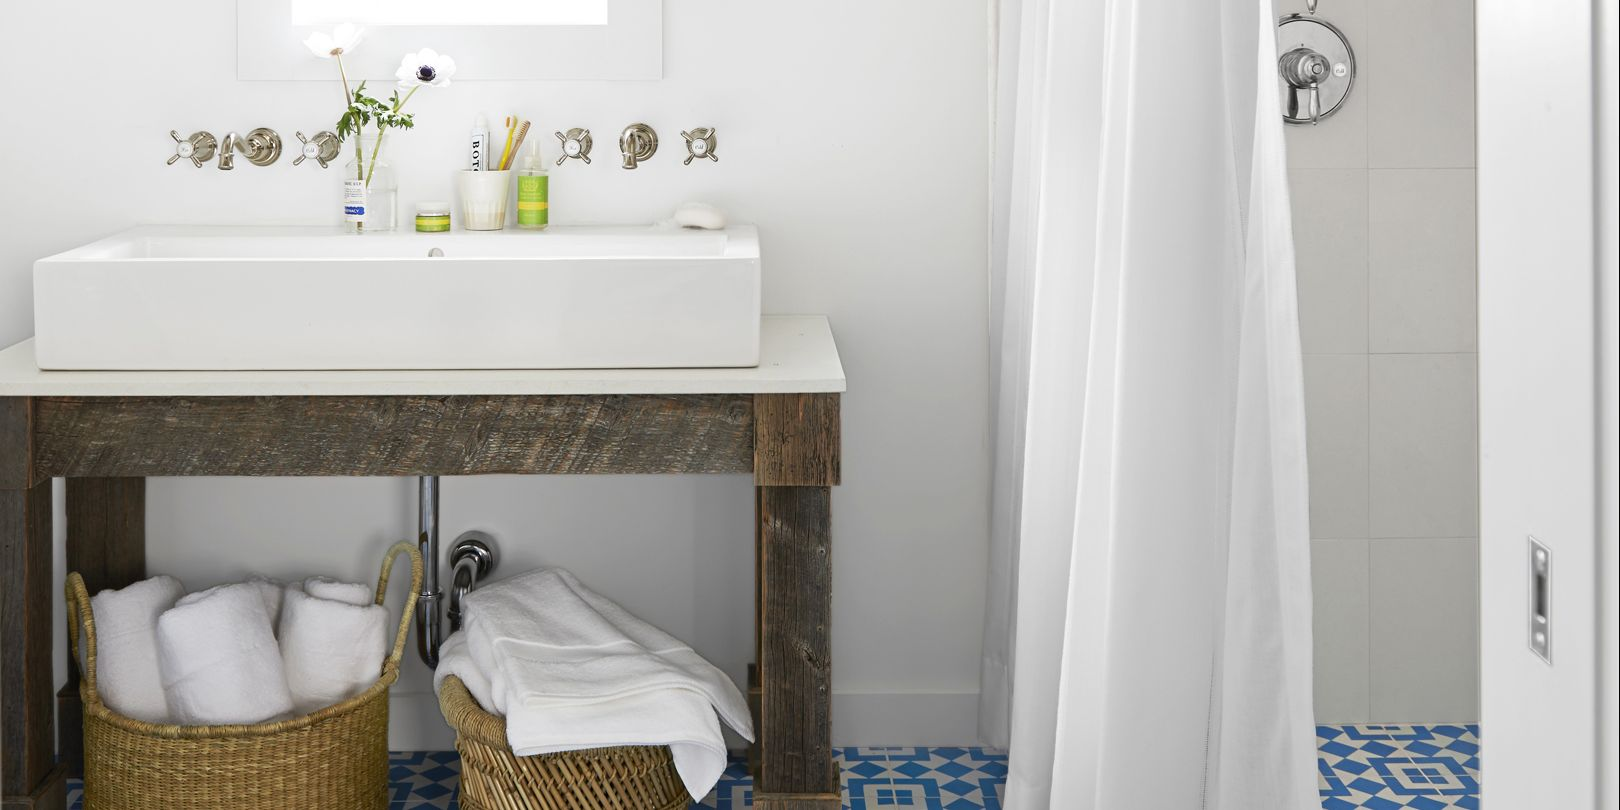 Optimal Usage Of Space And Items For Small Bathroom Ideas: 18 Small Bathroom Storage Ideas